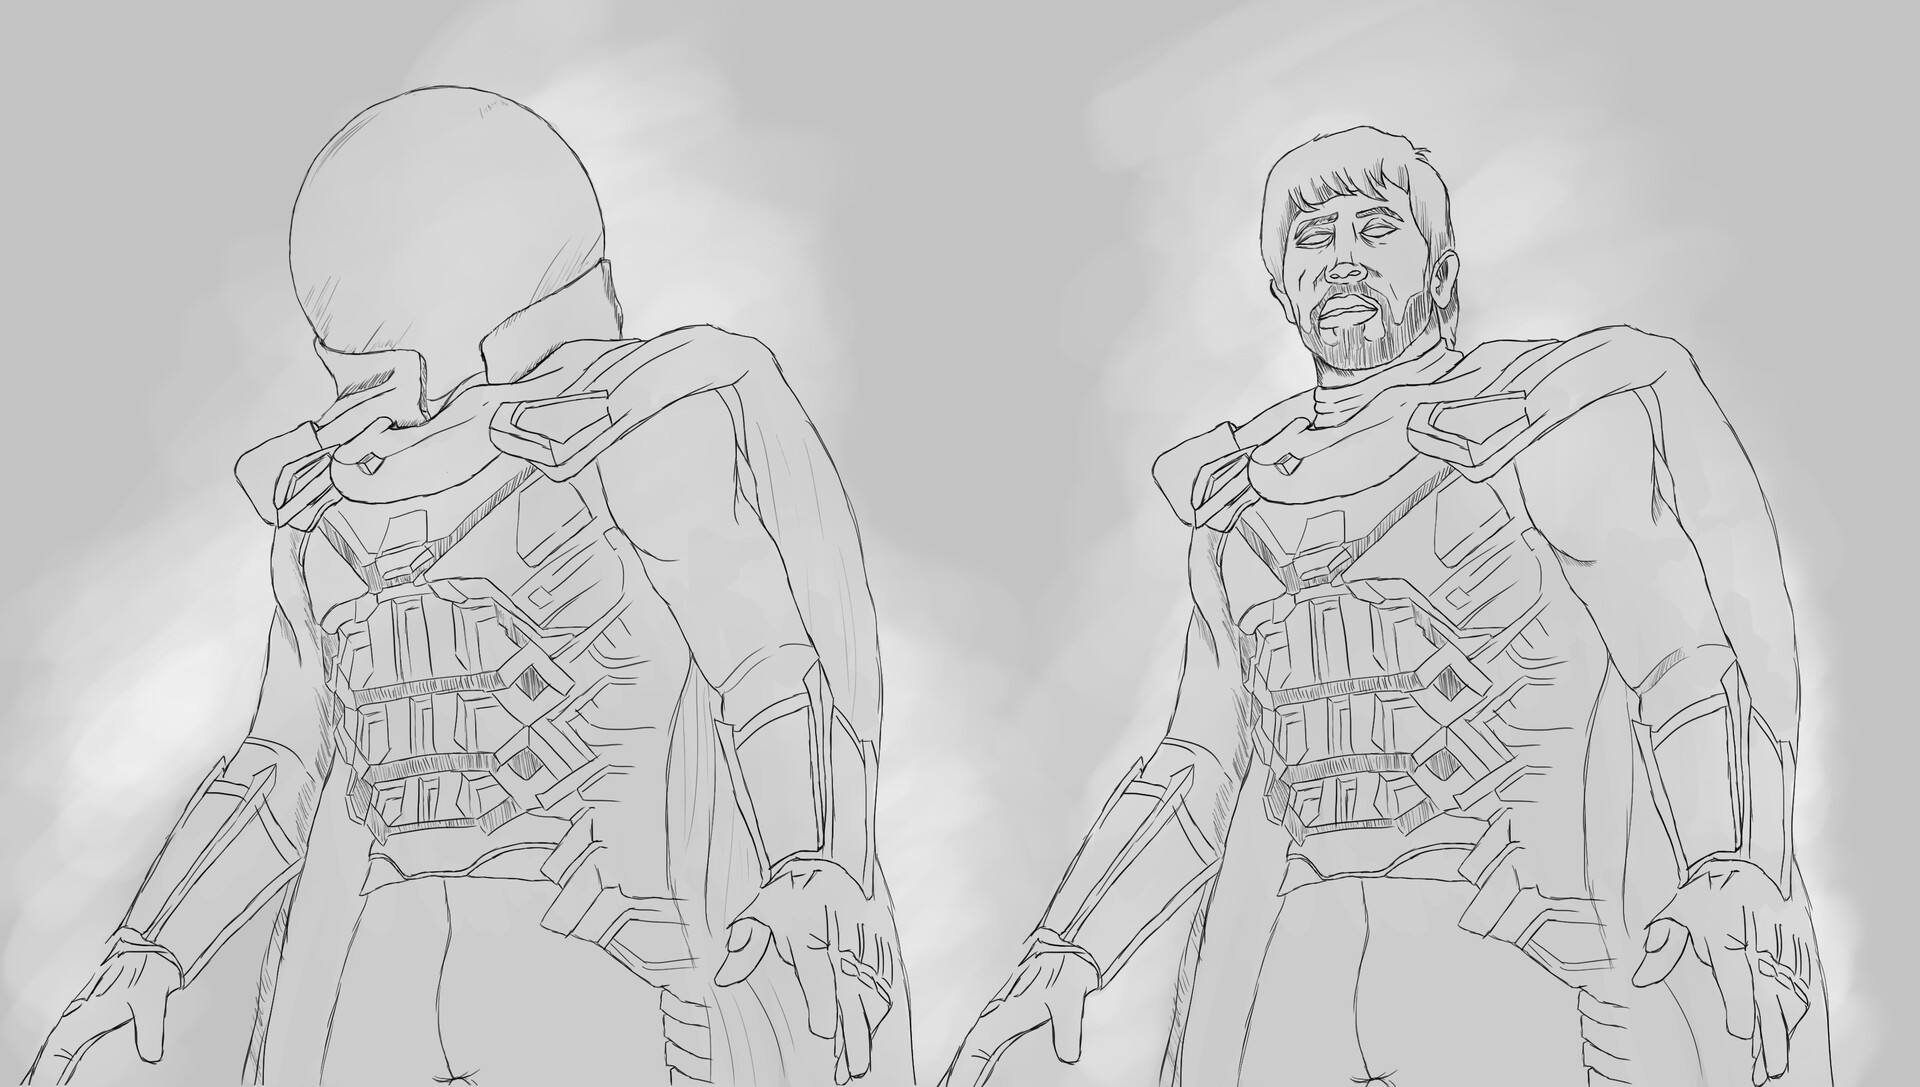 spider man stealth suit coloring page spider man superhero coloring pages coloring suit stealth spider page man